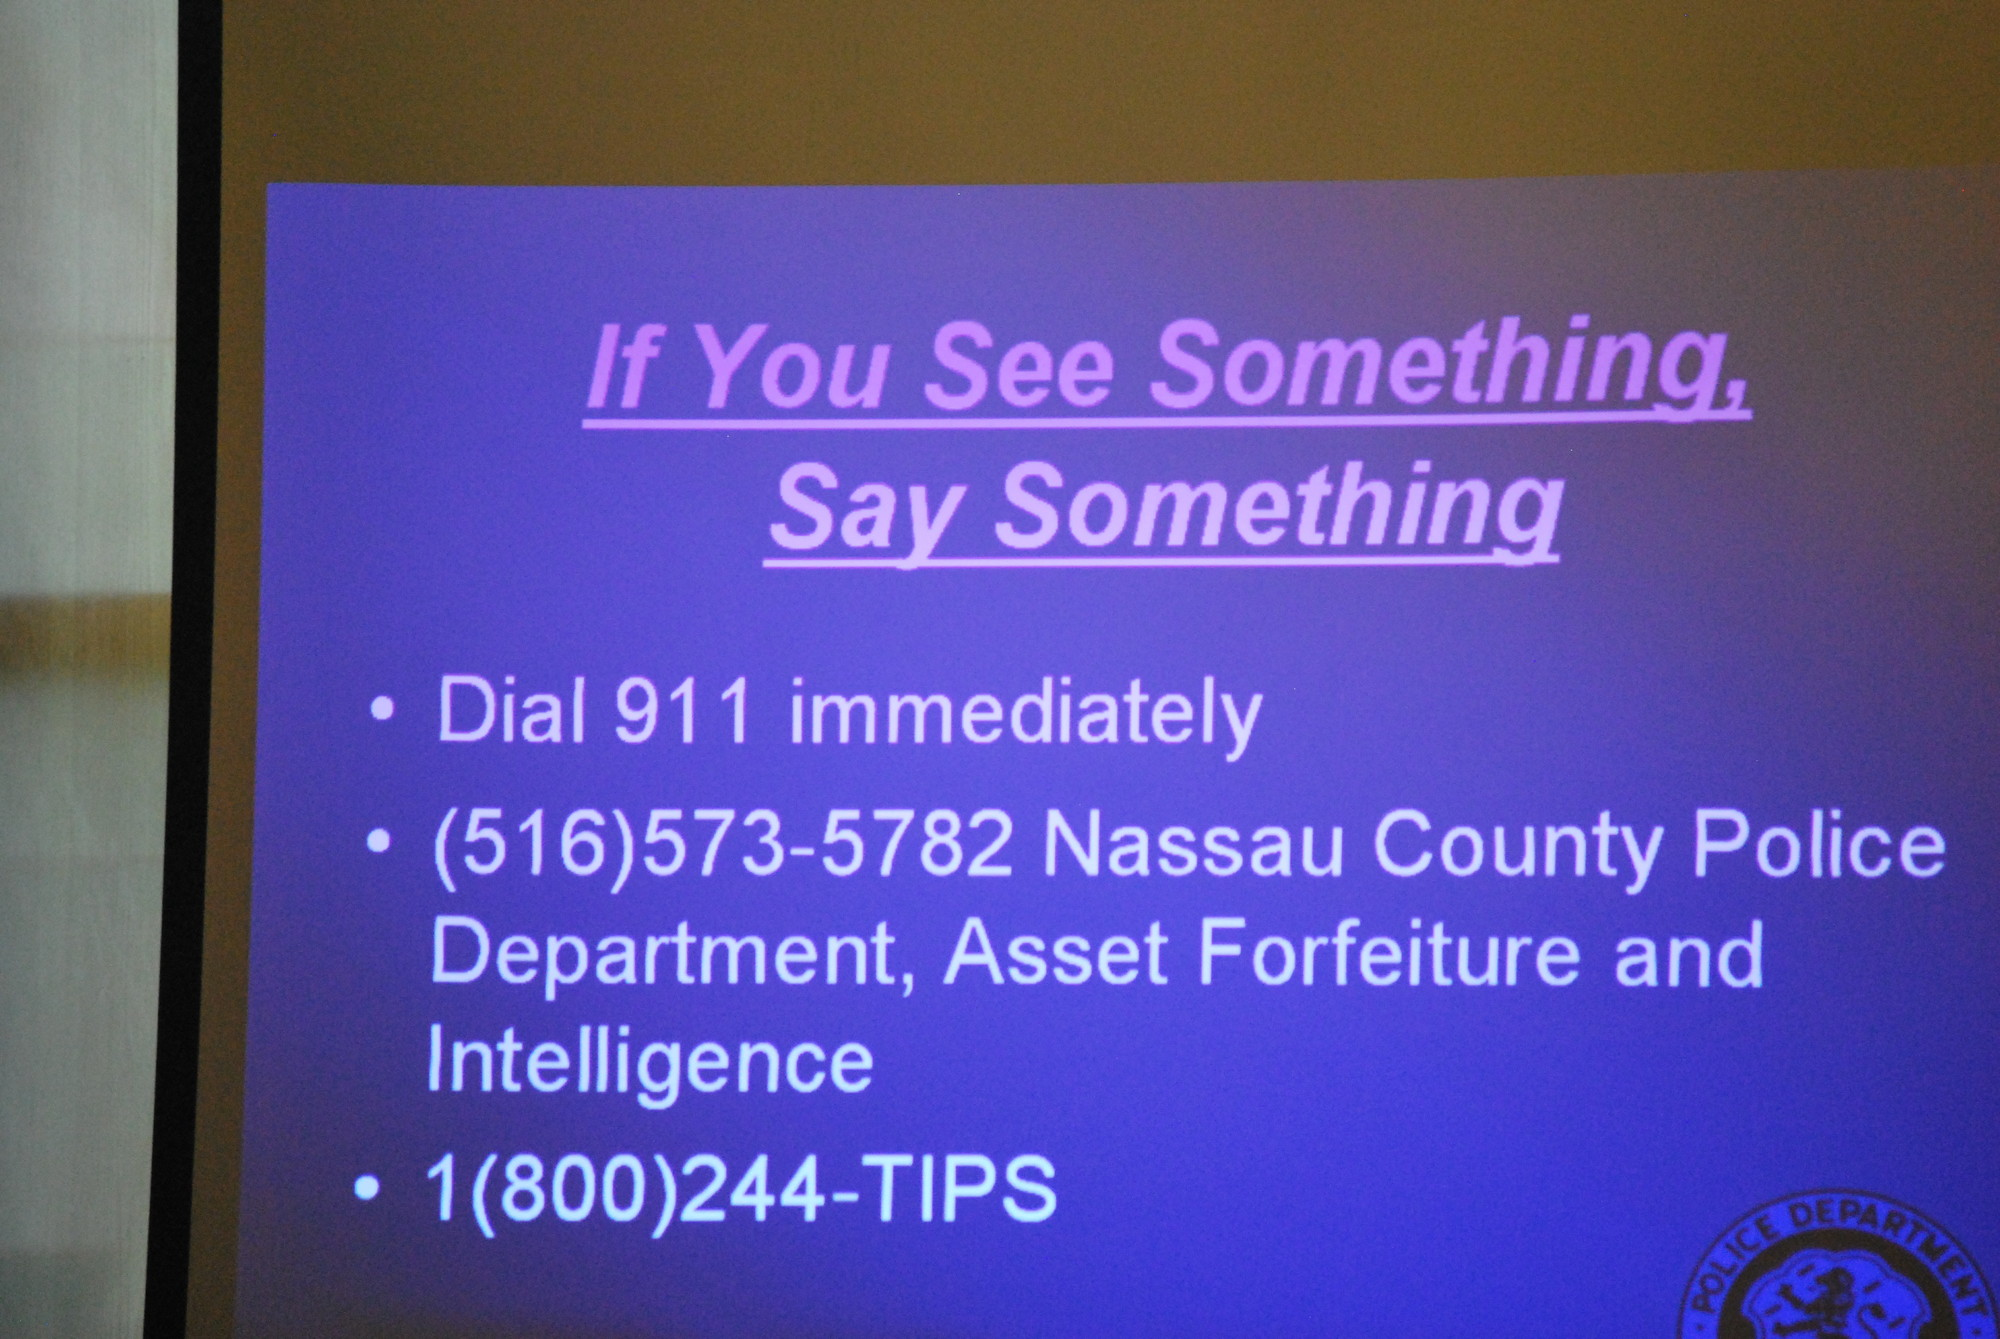 Nassau County police officials said that being vigilant and informing the authorities about suspicious behavior are ways to combat violent incidents.